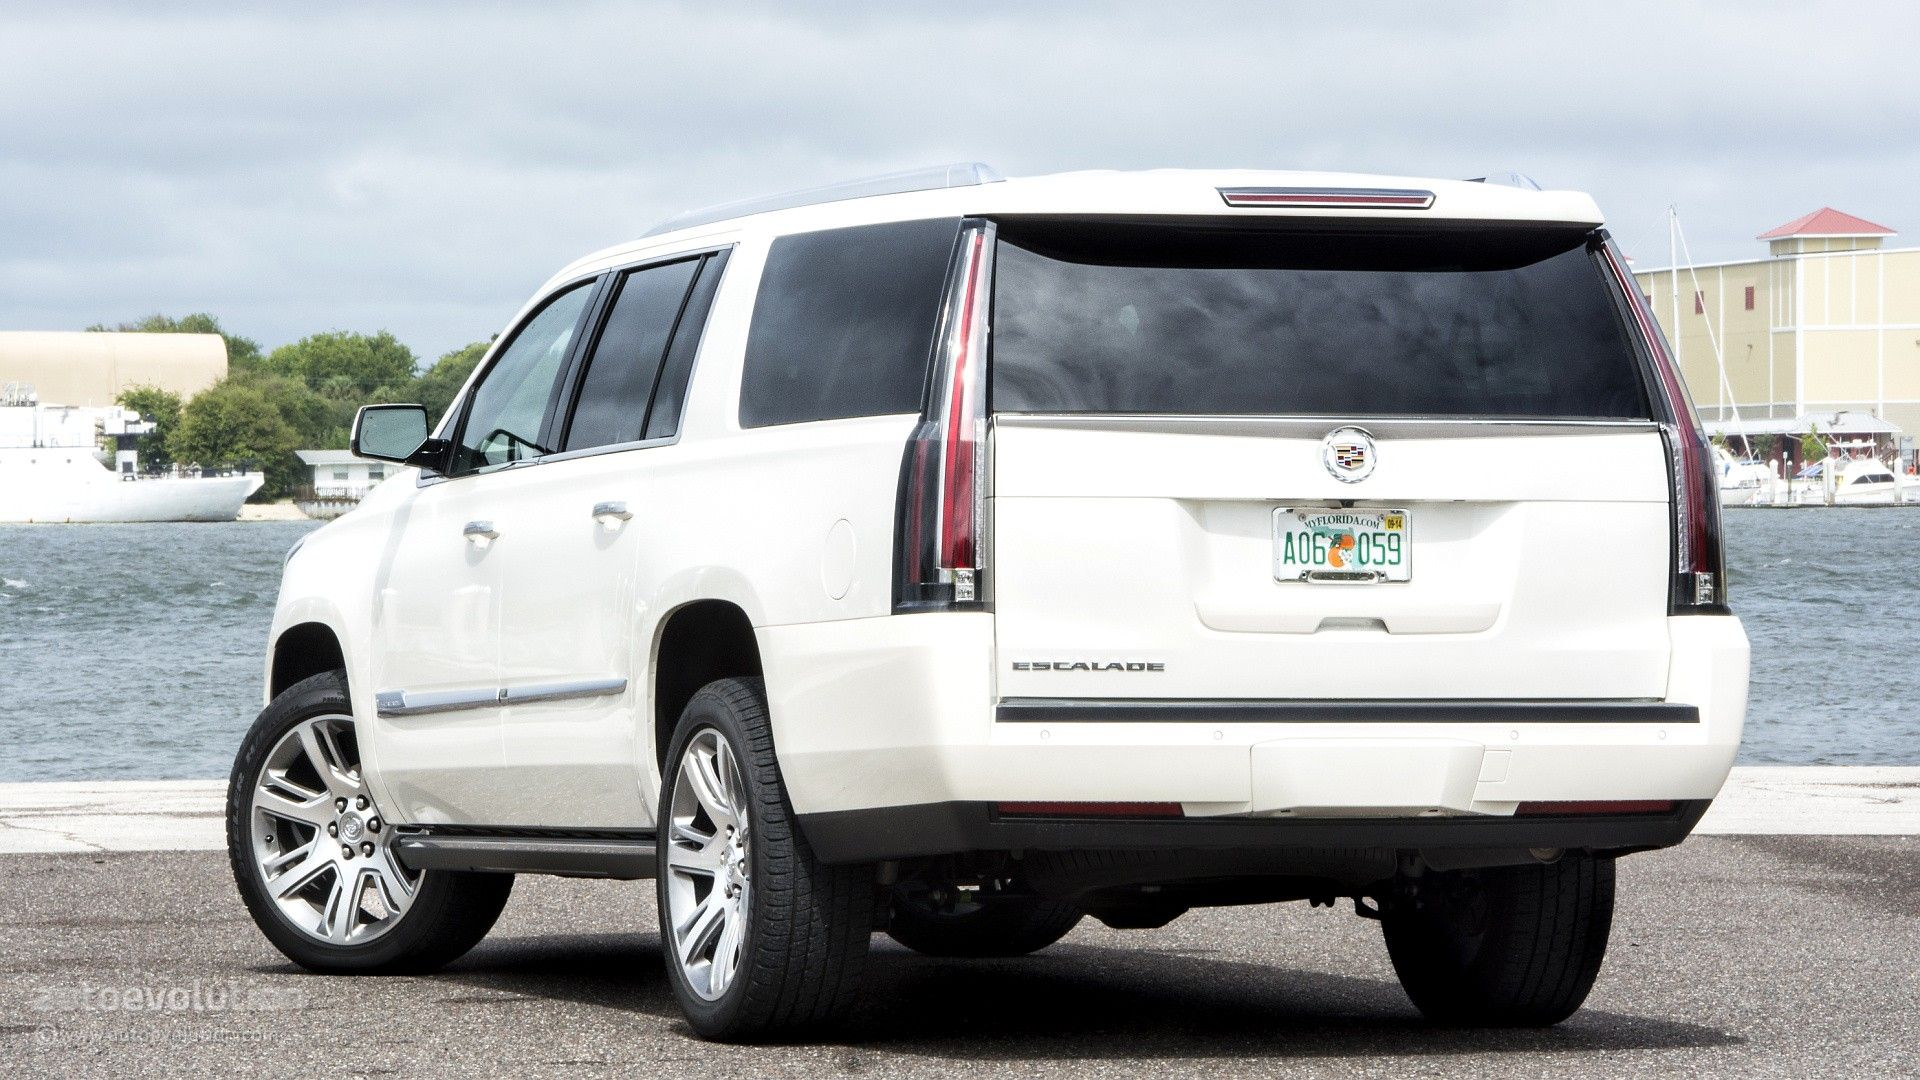 2015 cadillac escalade review http www autoevolution com reviews cadillac escaladehtml